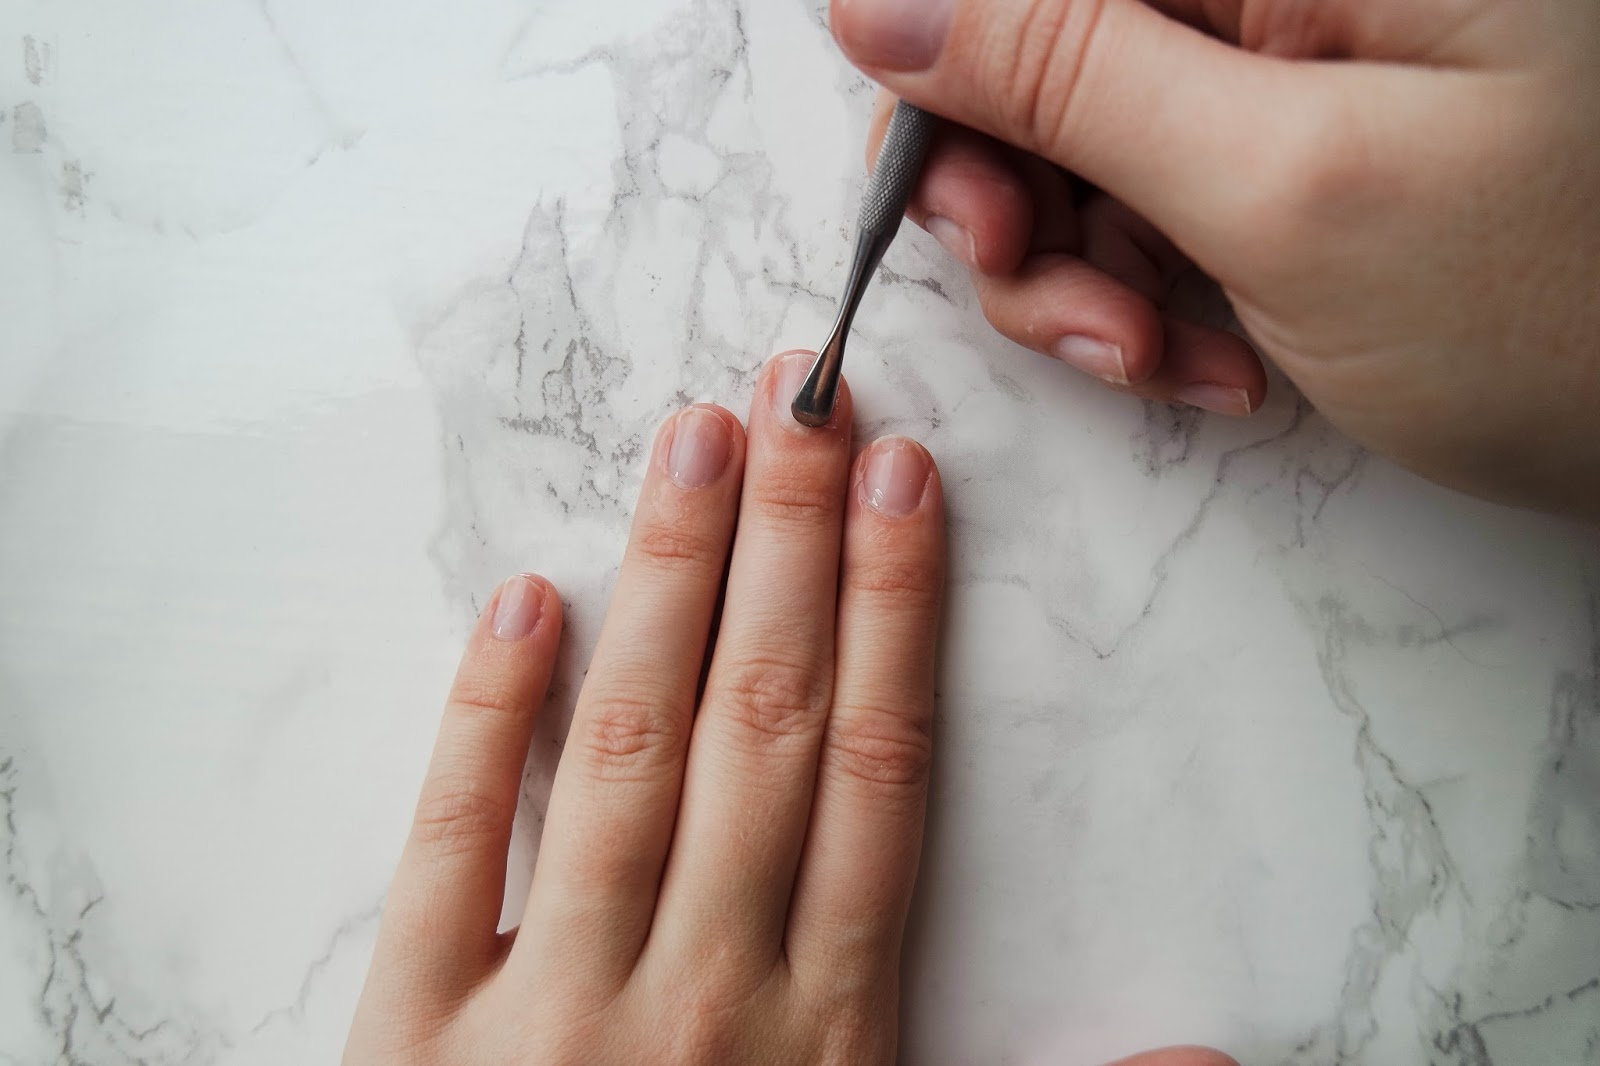 Franish: how to: do an at-home manicure